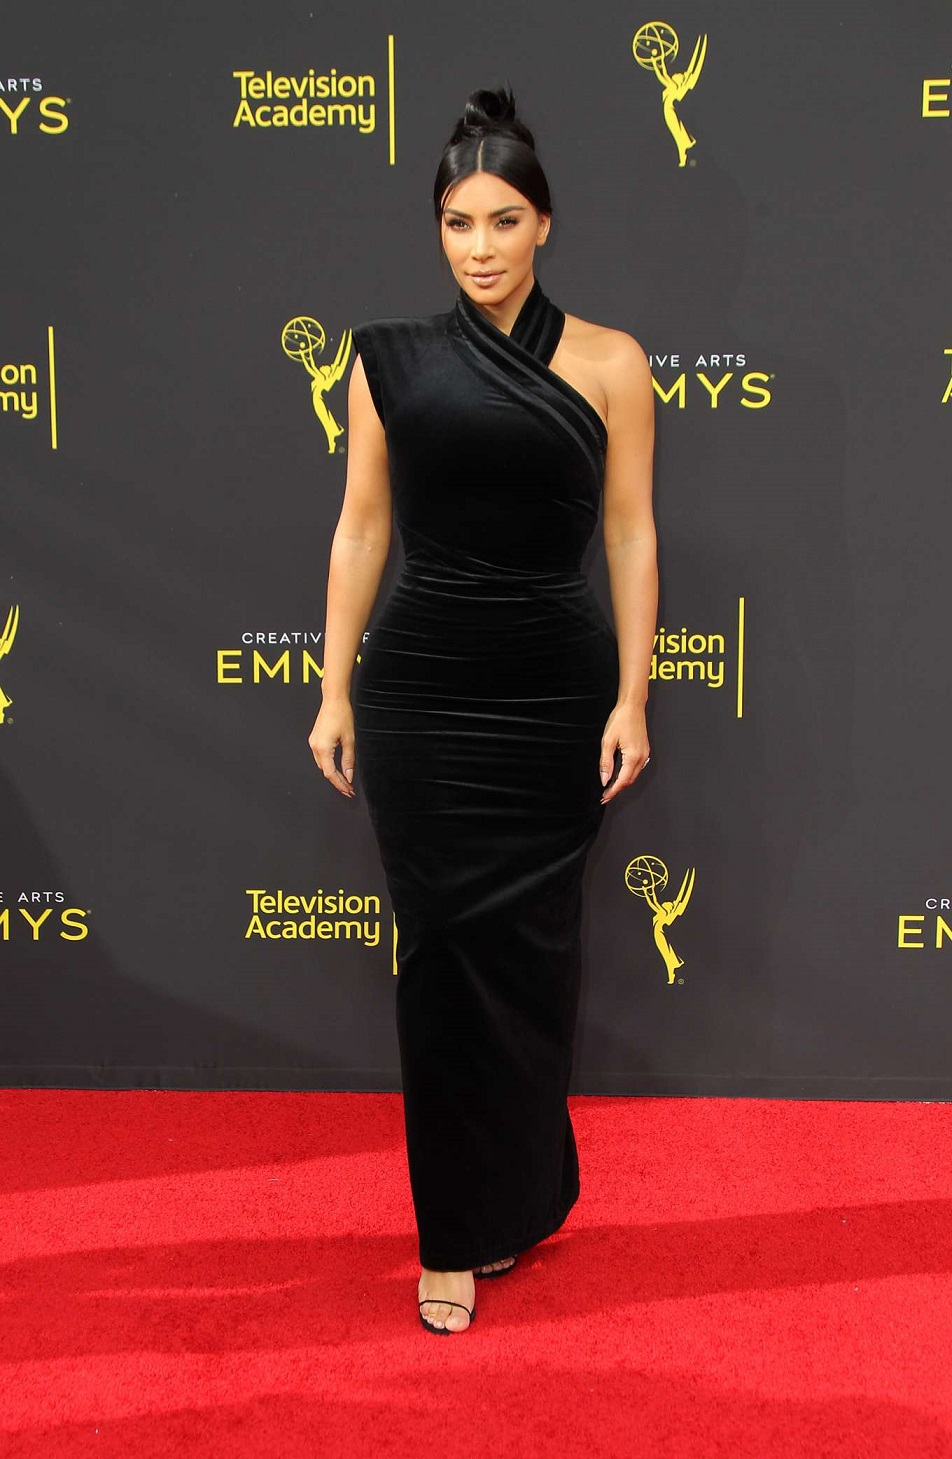 Kim Kardashian dazzles in black at the Creative Arts Emmys 2019